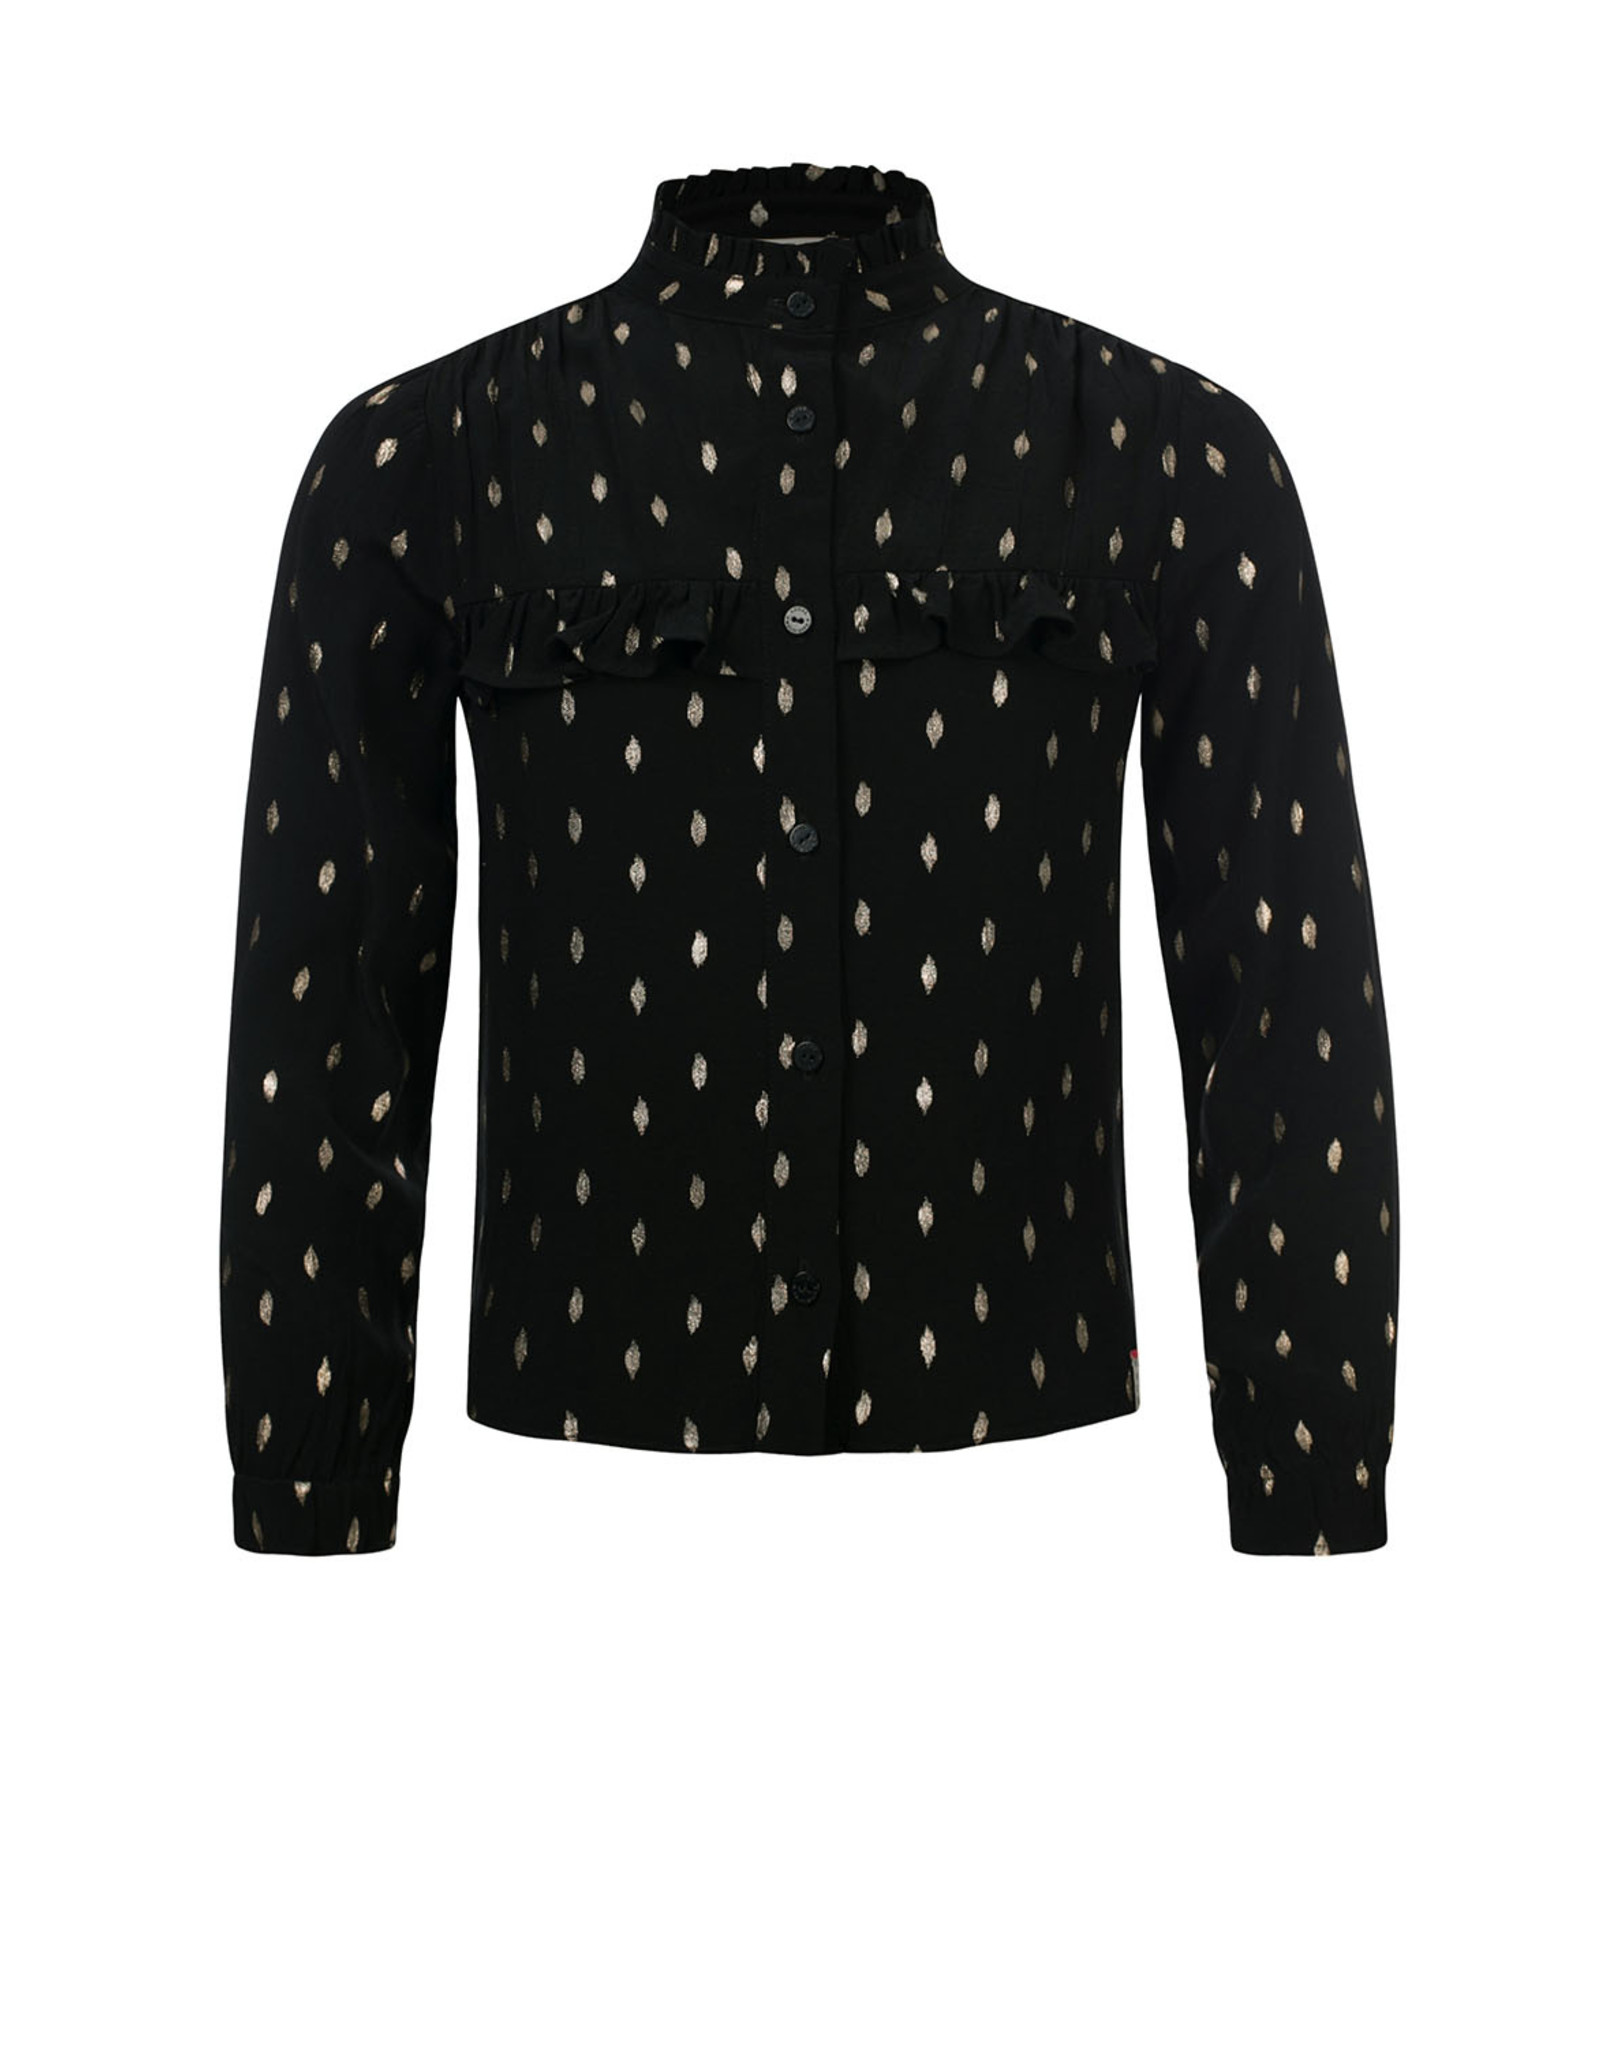 Looxs 10Sixteen Top with foil black